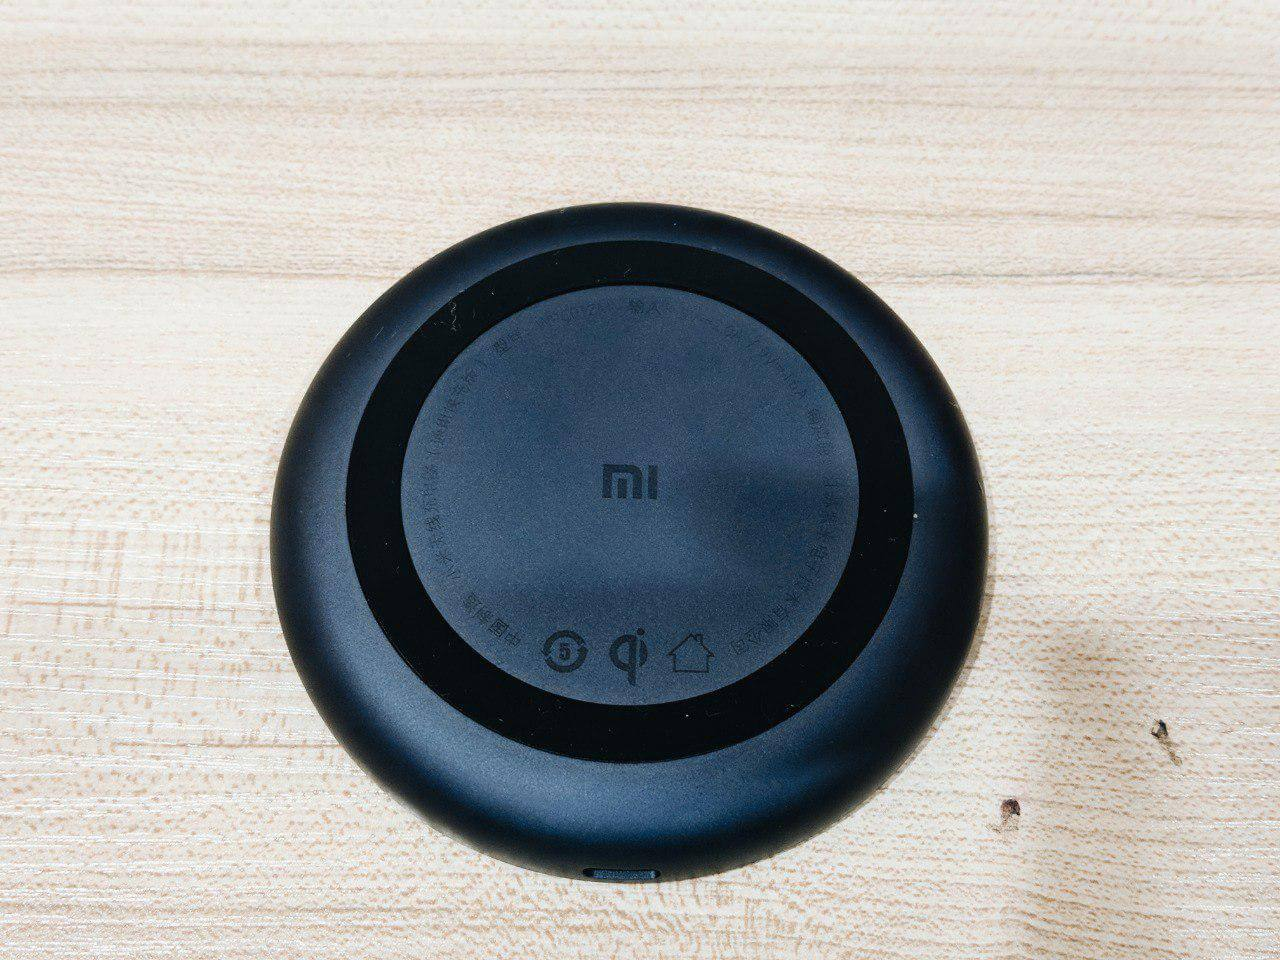 xiaomi 10w wireless charger bottom view